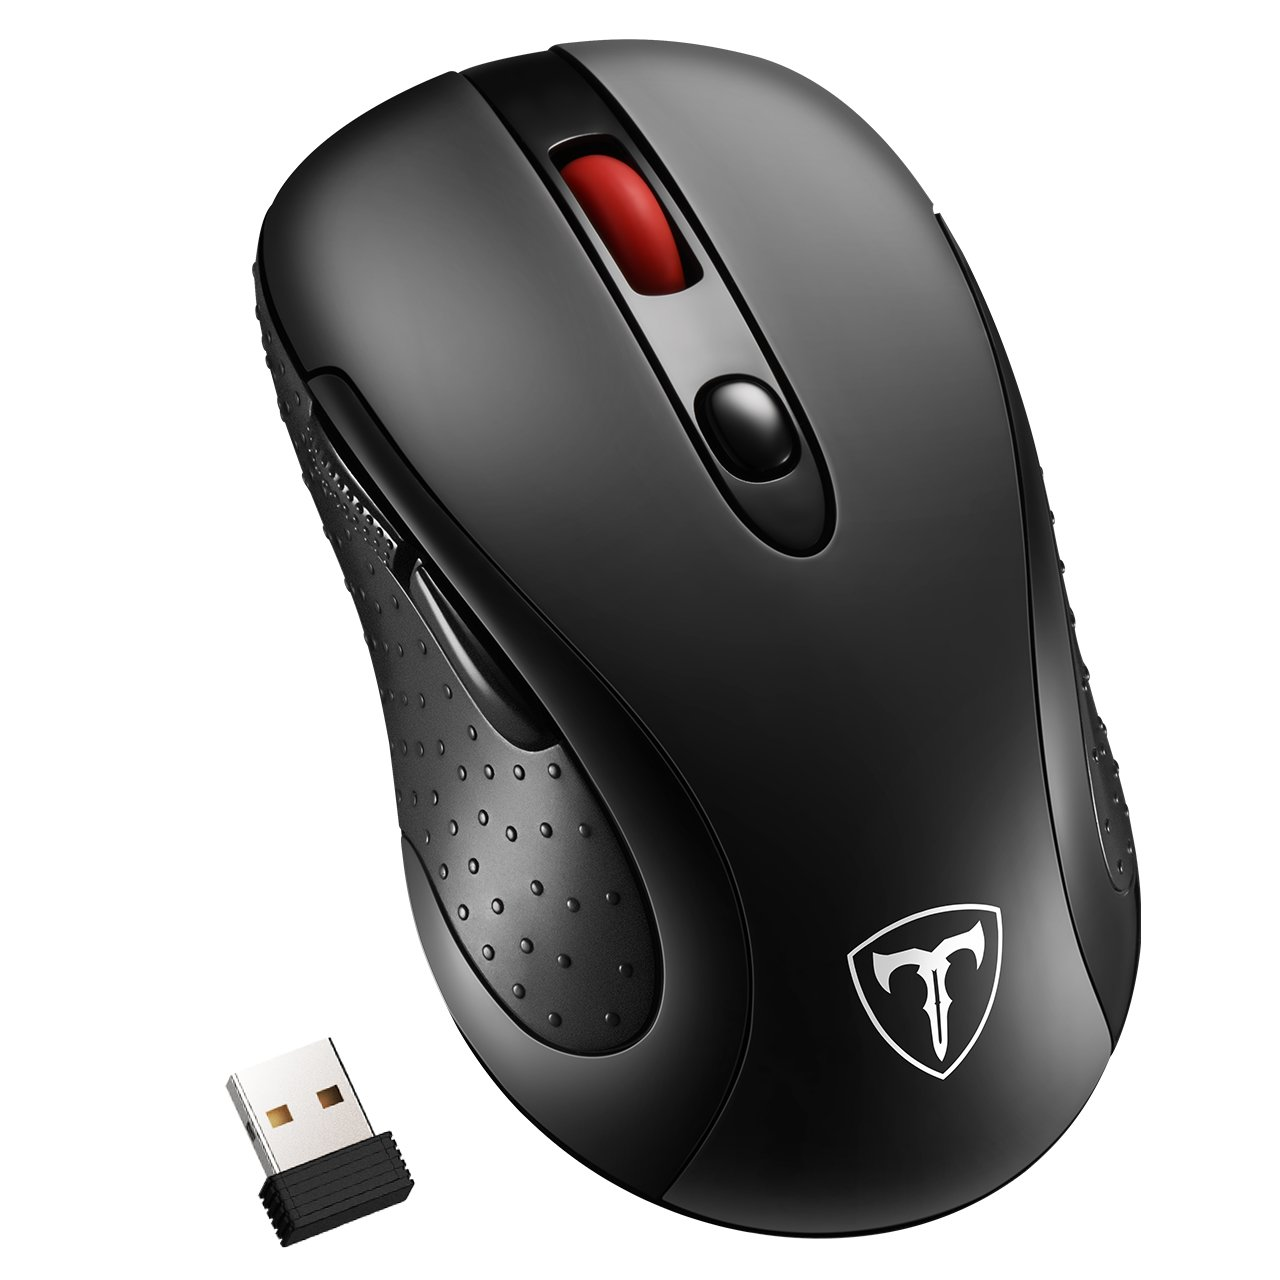 ec2b9c5814f Habor Wireless Mouse, 2.4G Cordless Mouses Portable Optical Computer Mice  with USB 3.0 Nano Receiver, 5 Adjustable DPI Levels, 6 Buttons, Power  Saving ...